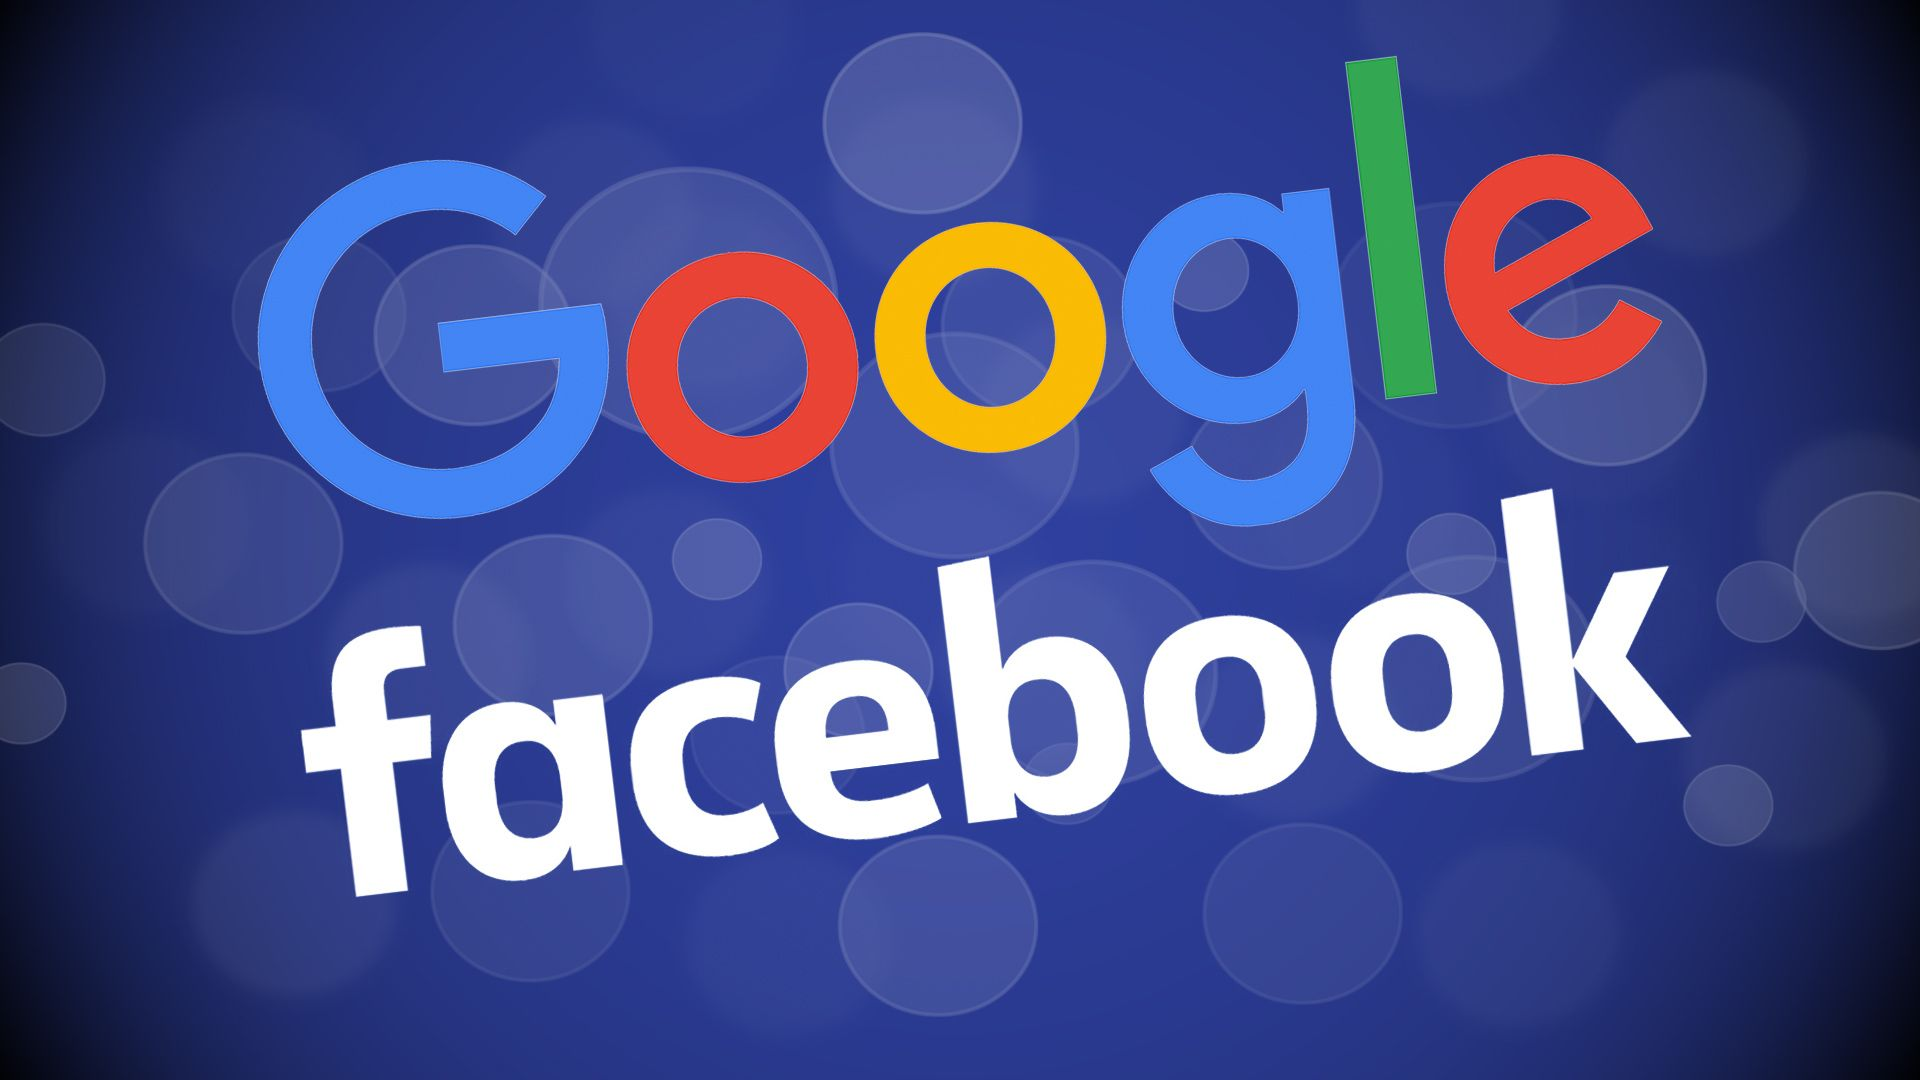 Use of app indexing will send searchers from Google into the Facebook app, but only on Android and not for all Facebook content.